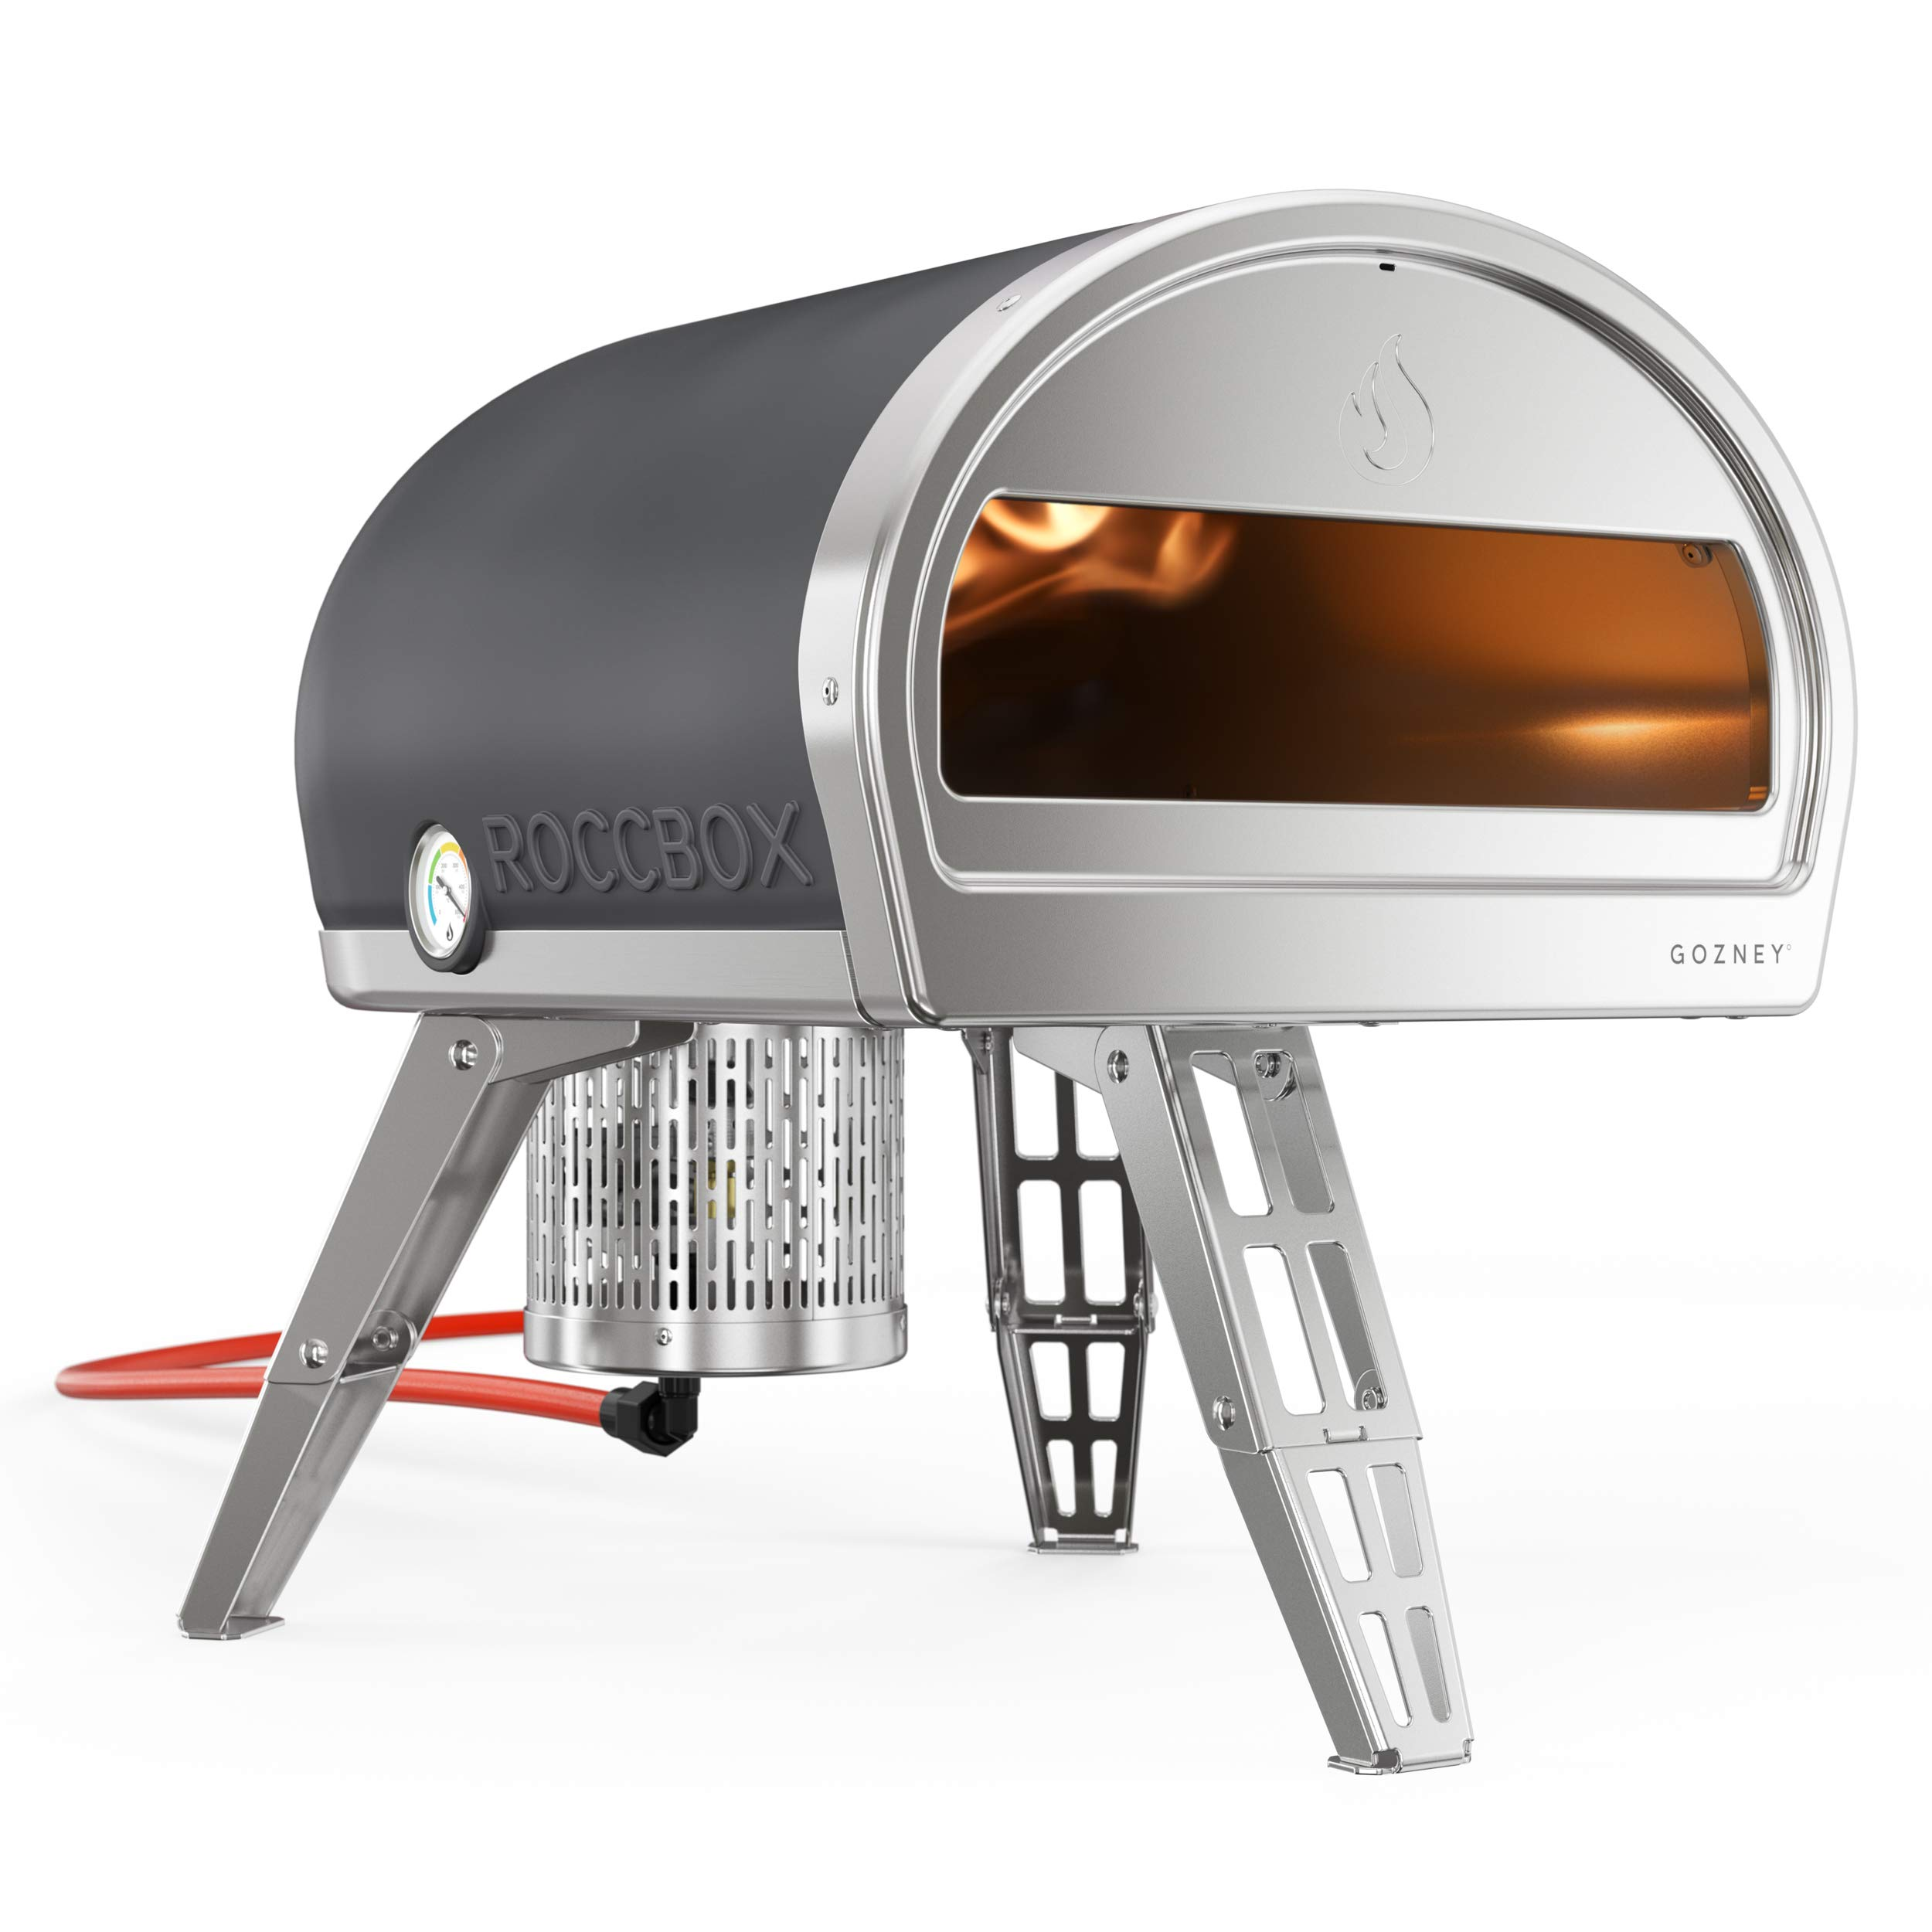 Roccbox Portable Outdoor Pizza Oven - Gas or Wood Fired, Dual-Fuel, Fire & Stone Outdoor Pizza Oven - Currently Includes Professional Grade Pizza Turning Peel